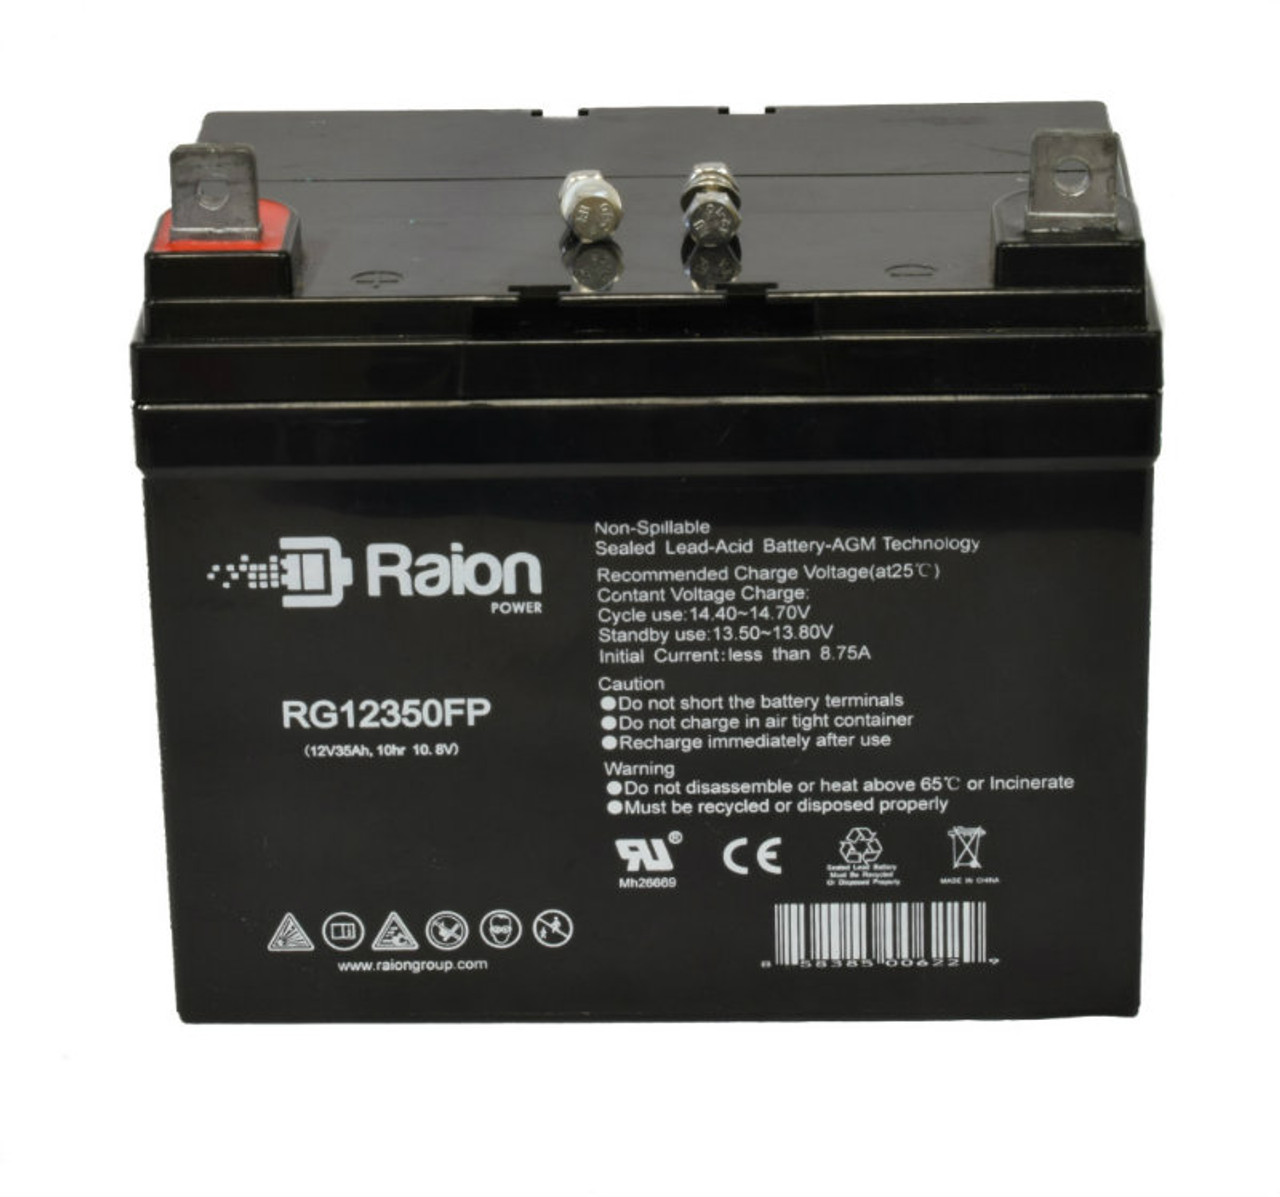 RG12350FP Sealed Lead Acid Battery Pack For Merits Pioneer 1 S143 Mobility Scooter